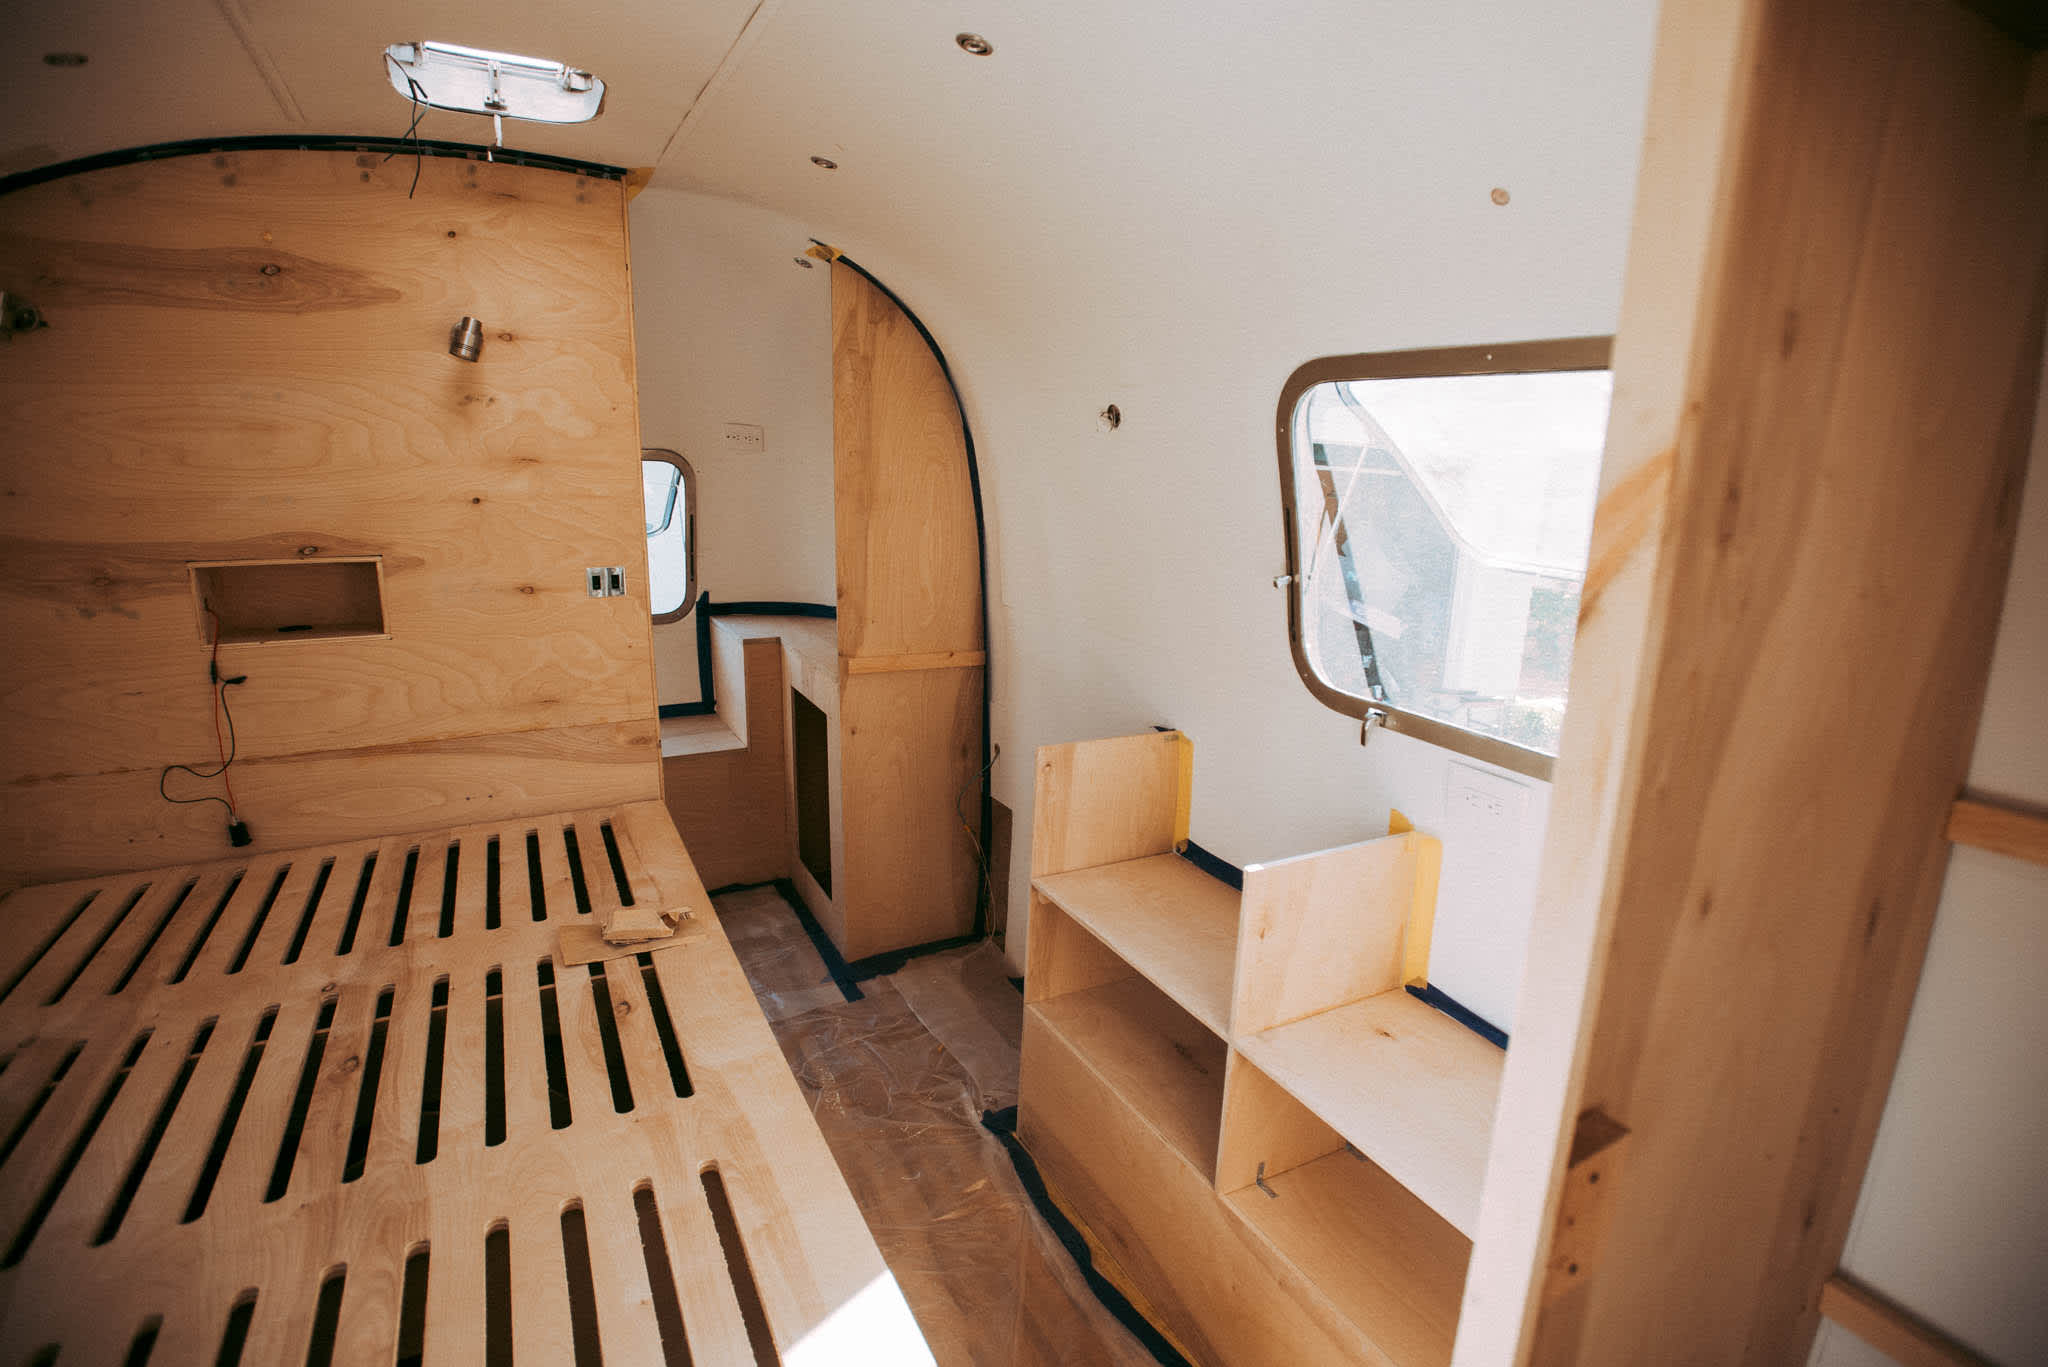 Before & After: Vintage Airstream Renovation | Apartment Therapy